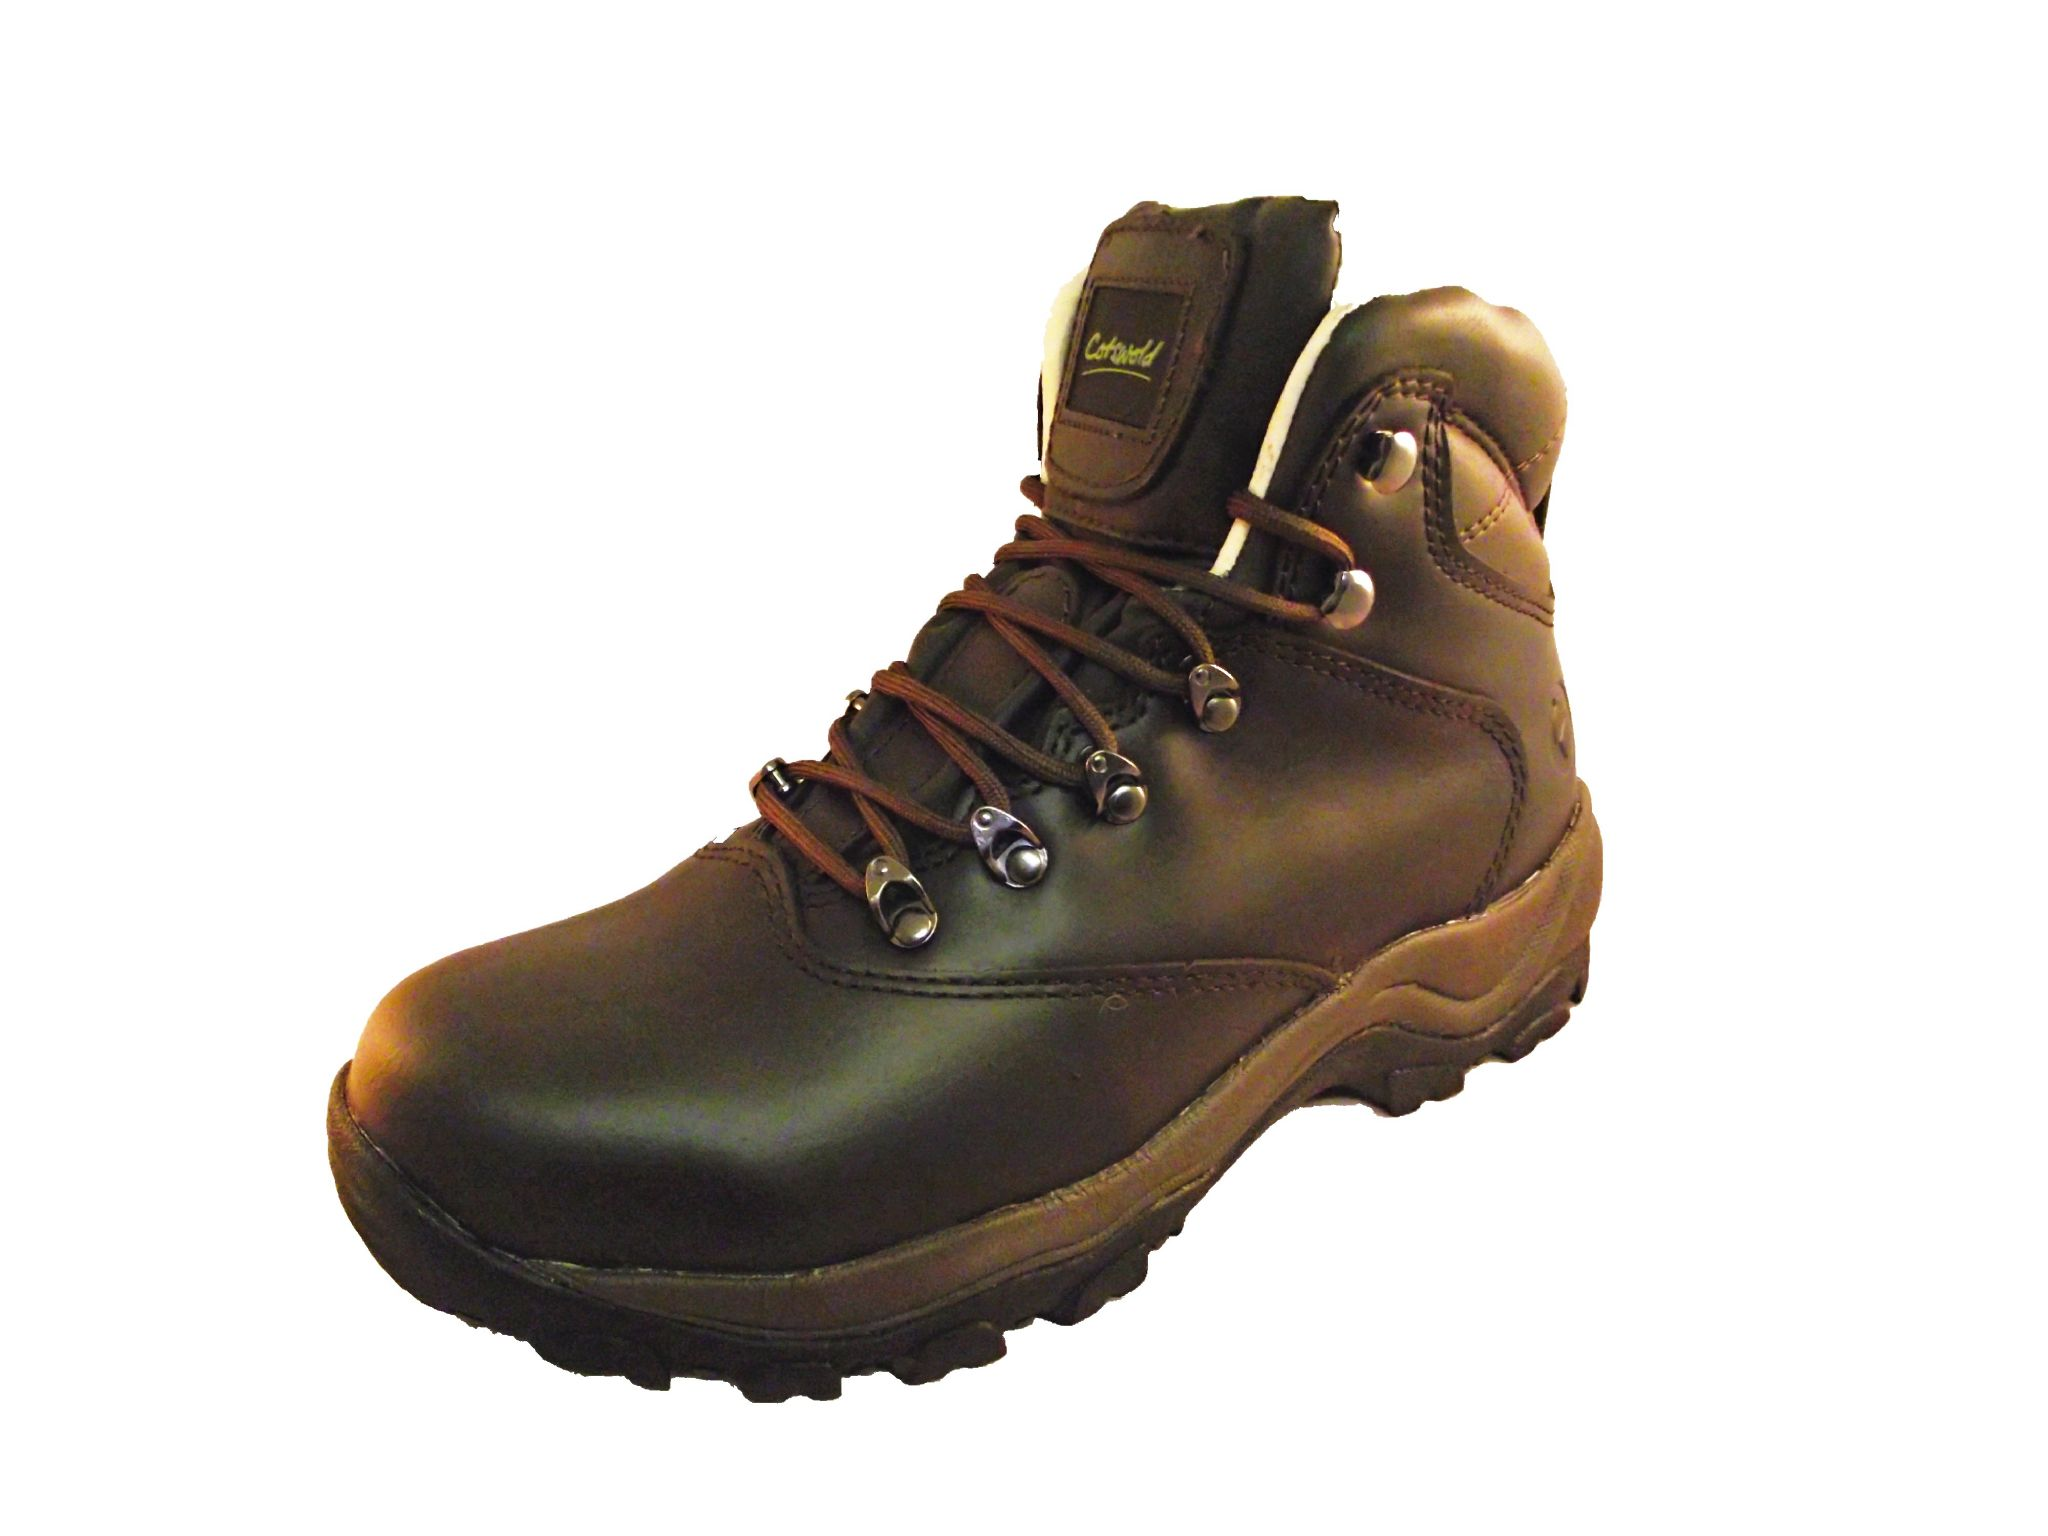 081c830b01e Cotswolds Premium waterproof leather hiking boot. Cotswold are well ...